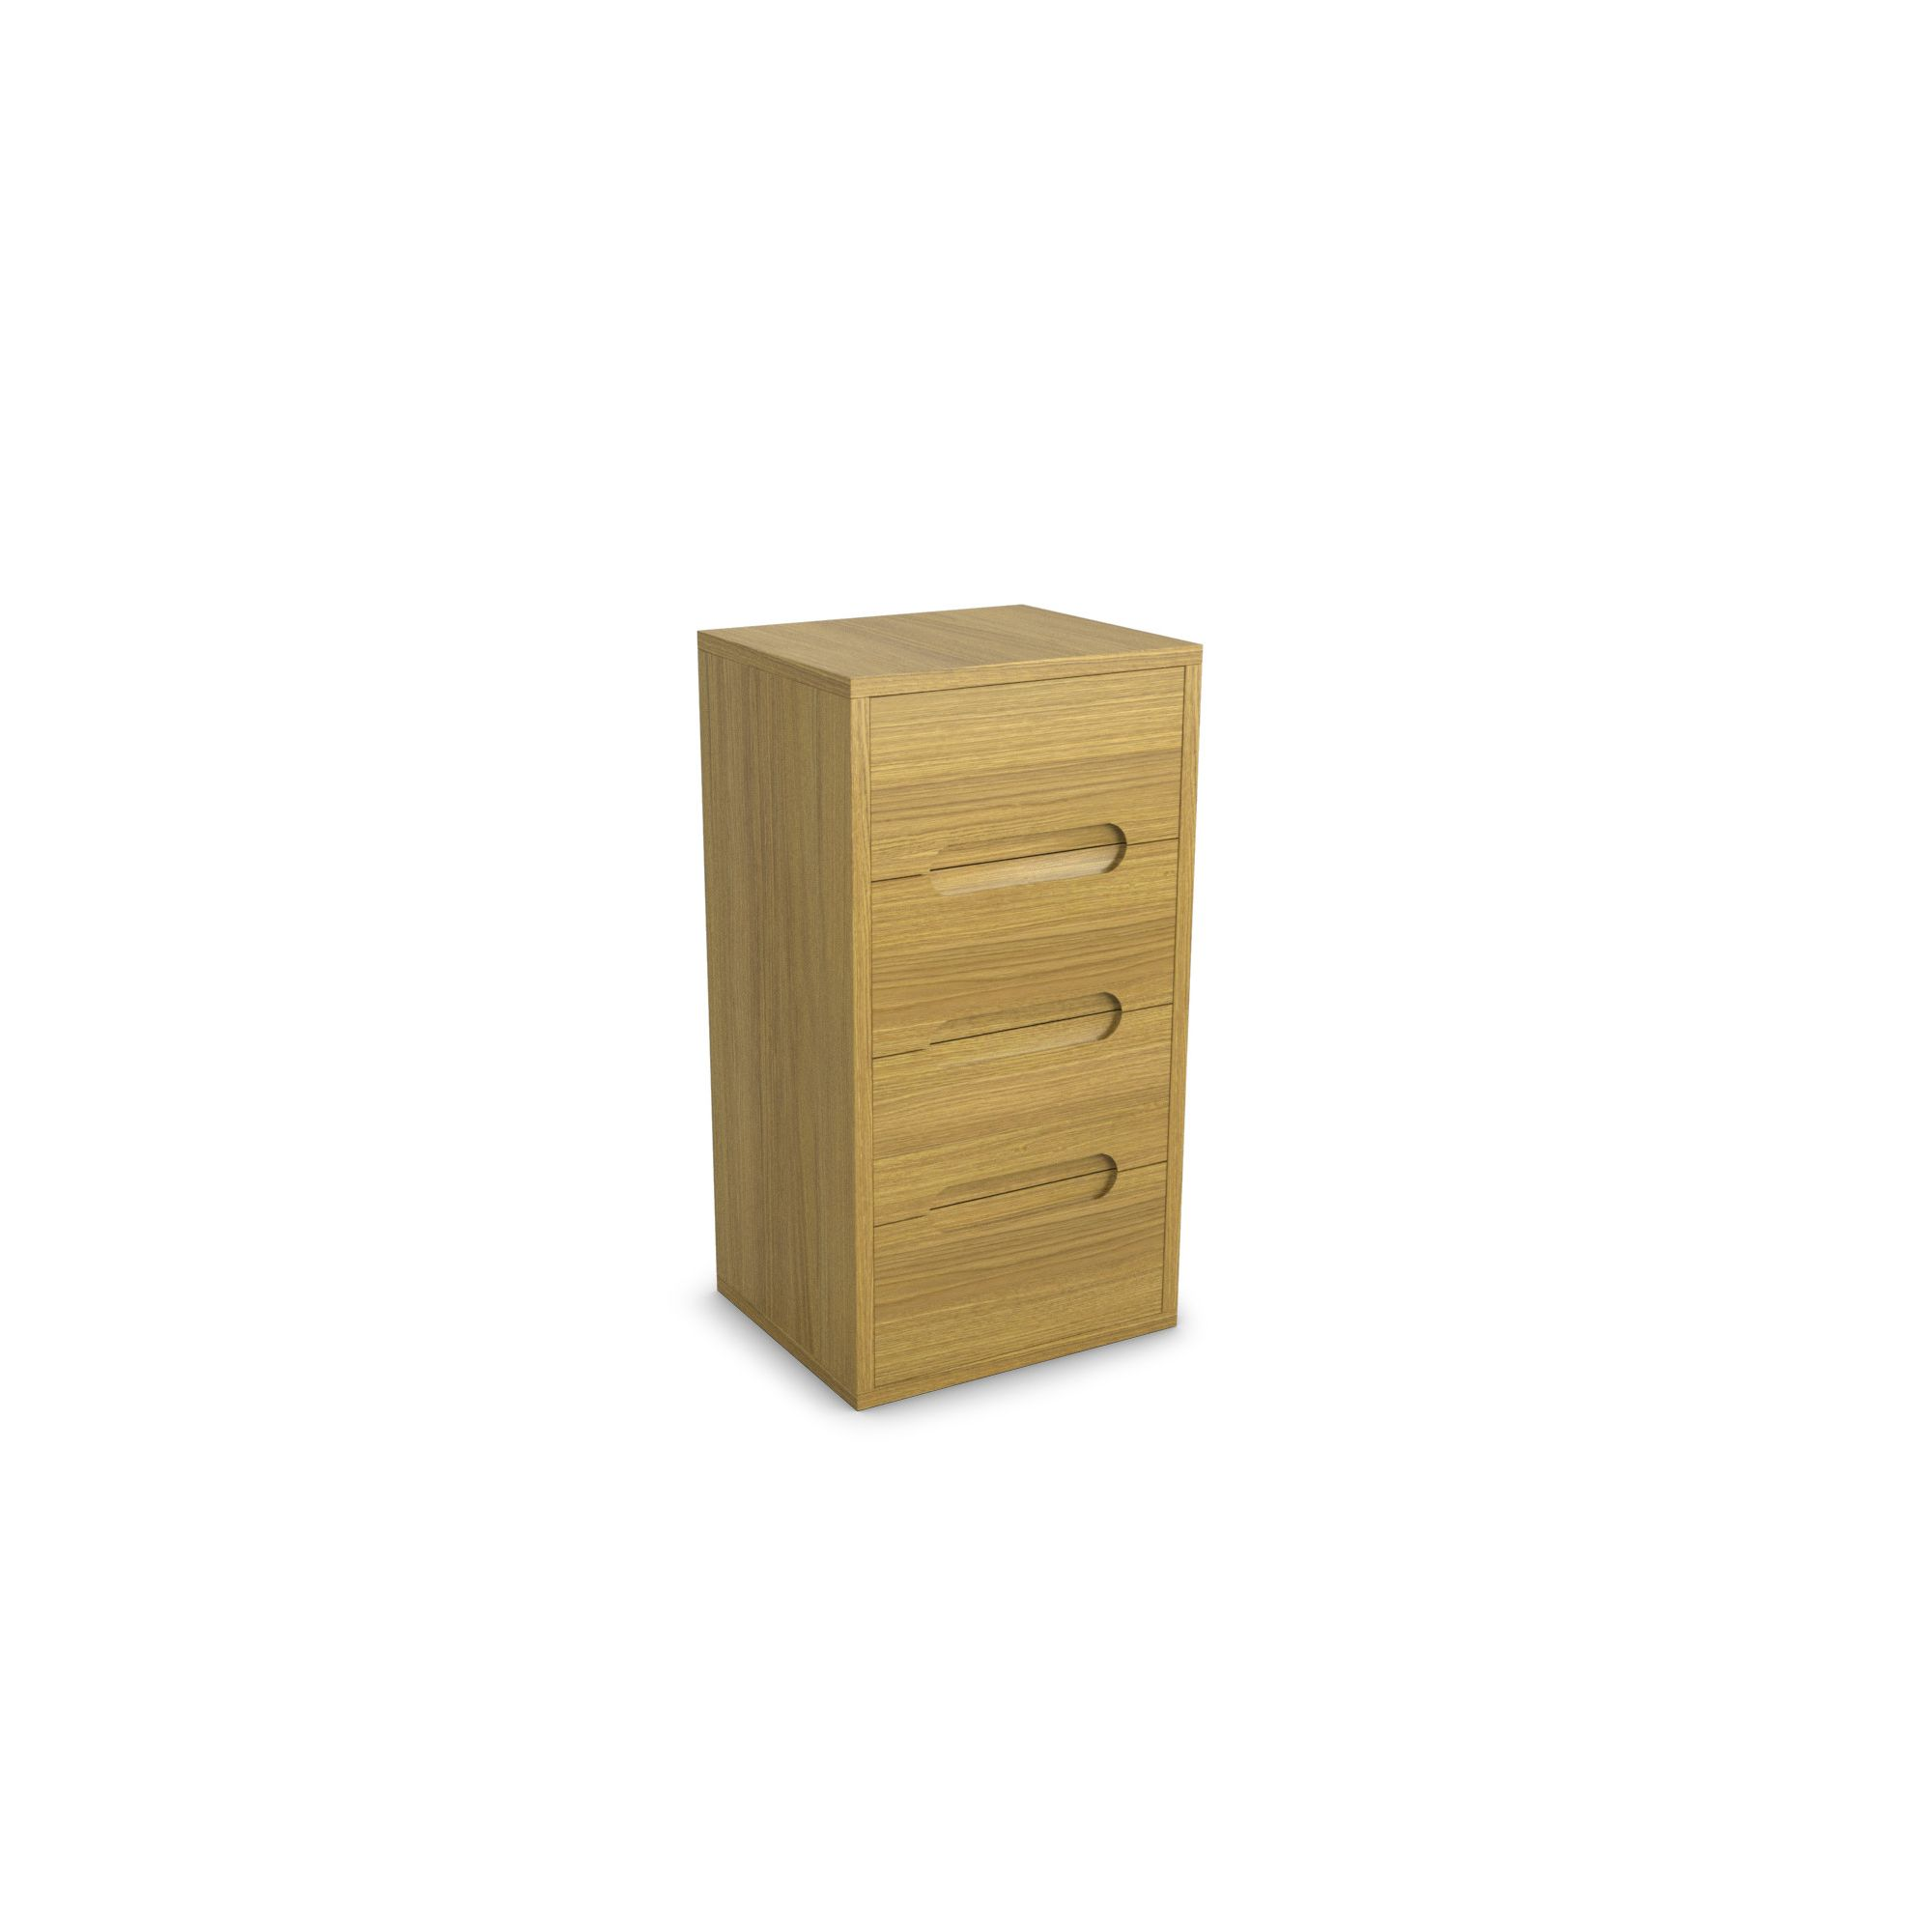 Urbane Designs Bolero 4 Drawer Narrow Chest at Tesco Direct